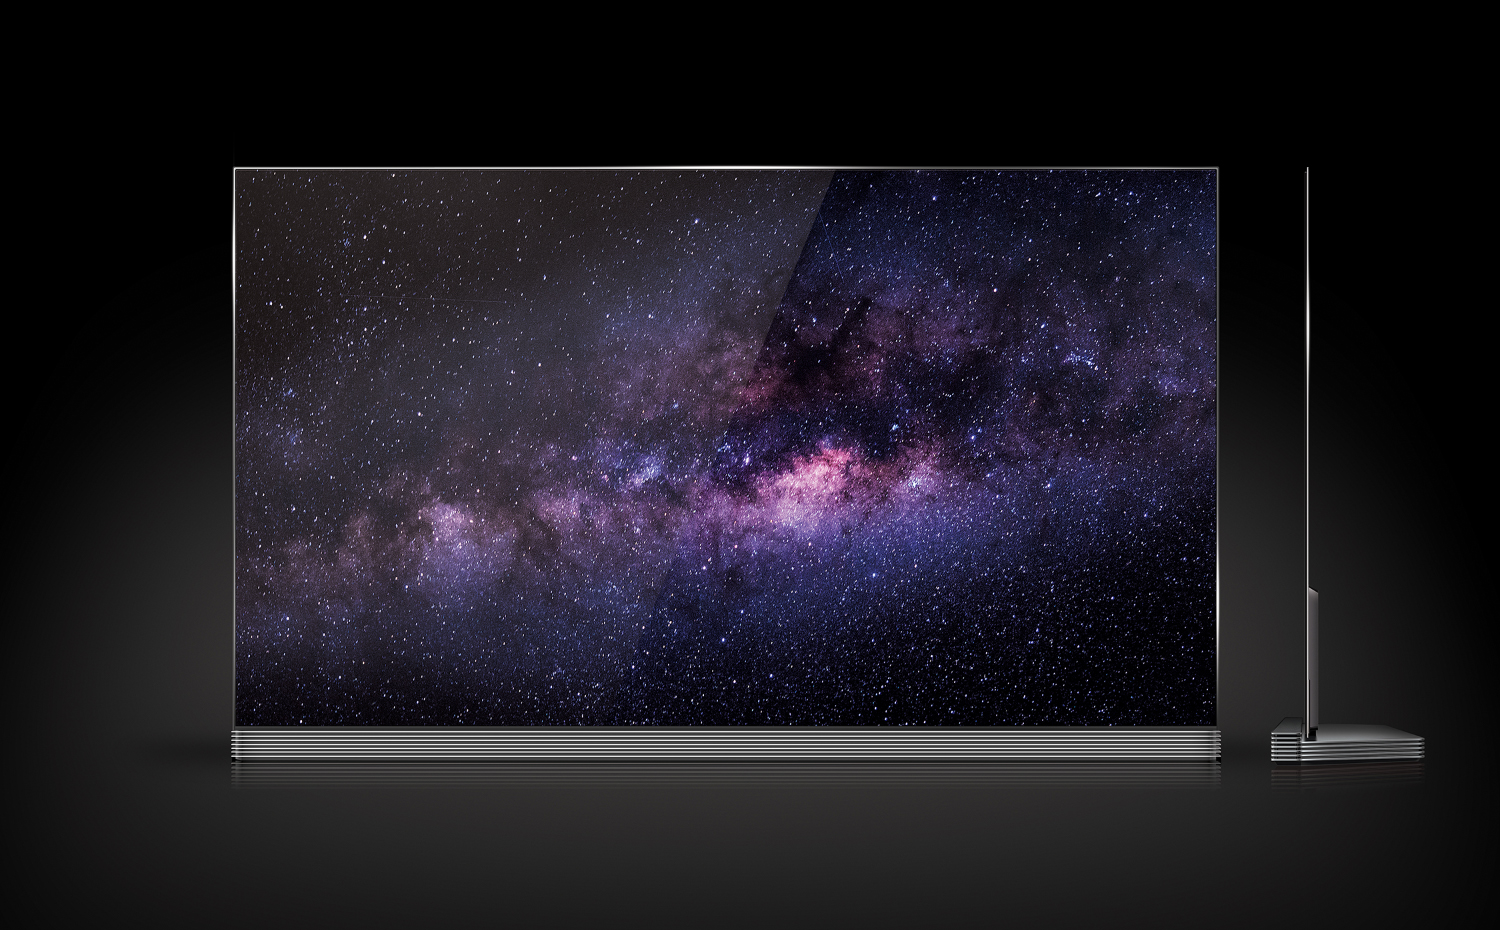 LG Electronics' flagship 2016 LG SIGNATURE OLED TV (model OLED65G6P) is available now for pre-order through participating retail partners, offering consumers a chance to be among the first to bring this revolutionary technology home.